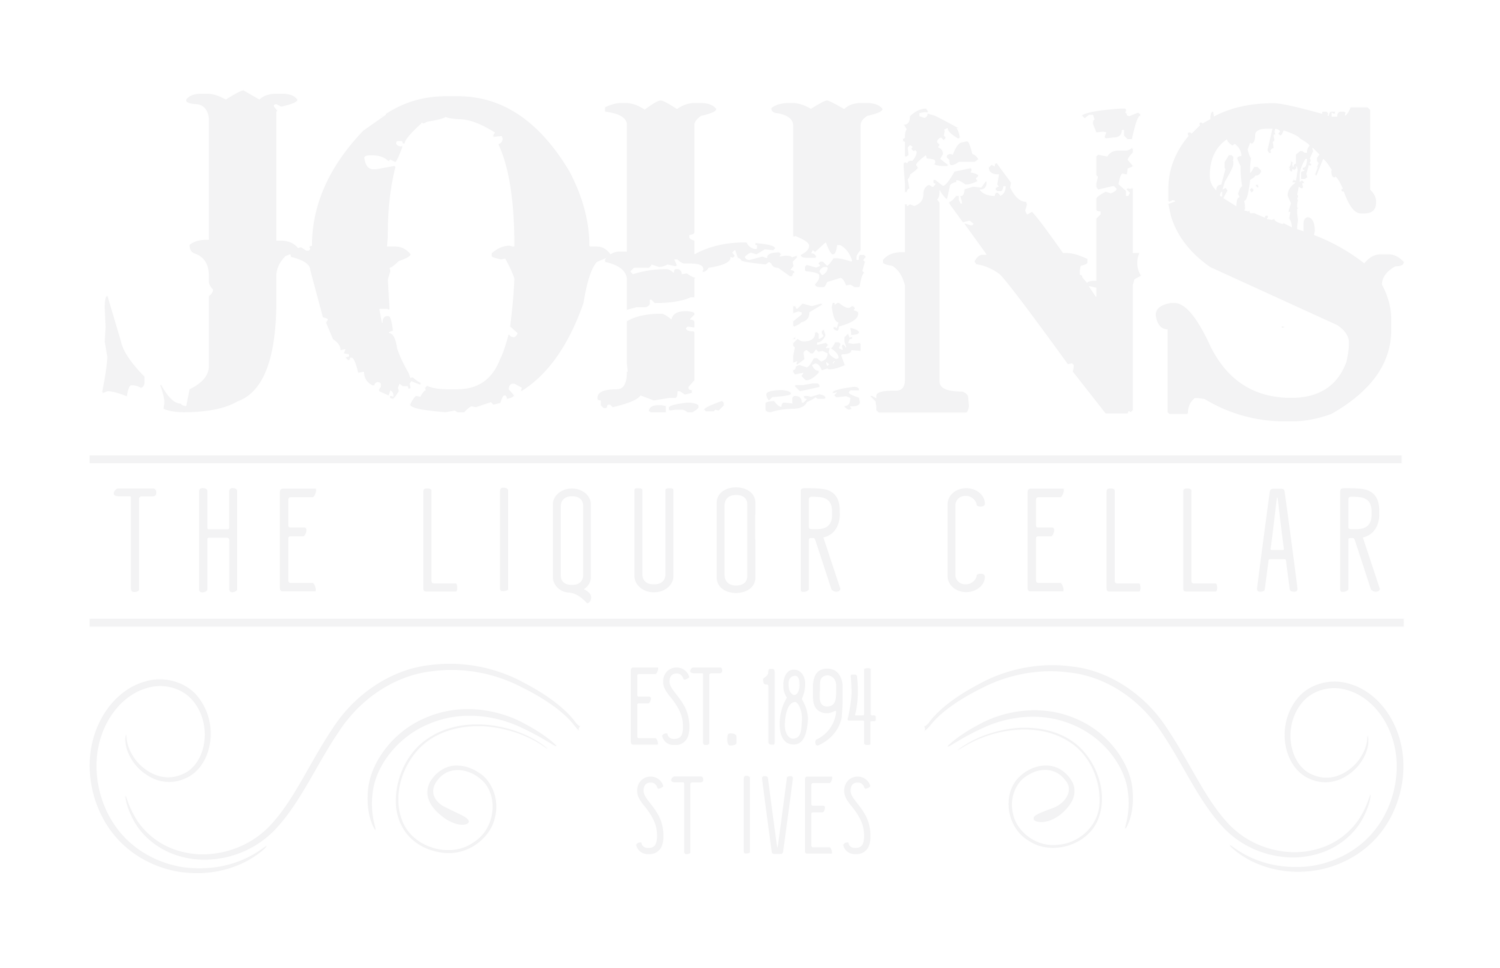 JOHNS - The Liquor Cellar | St Ives & Truro, Cornwall | Craft Spirits, Fine Wines, Local Beers.